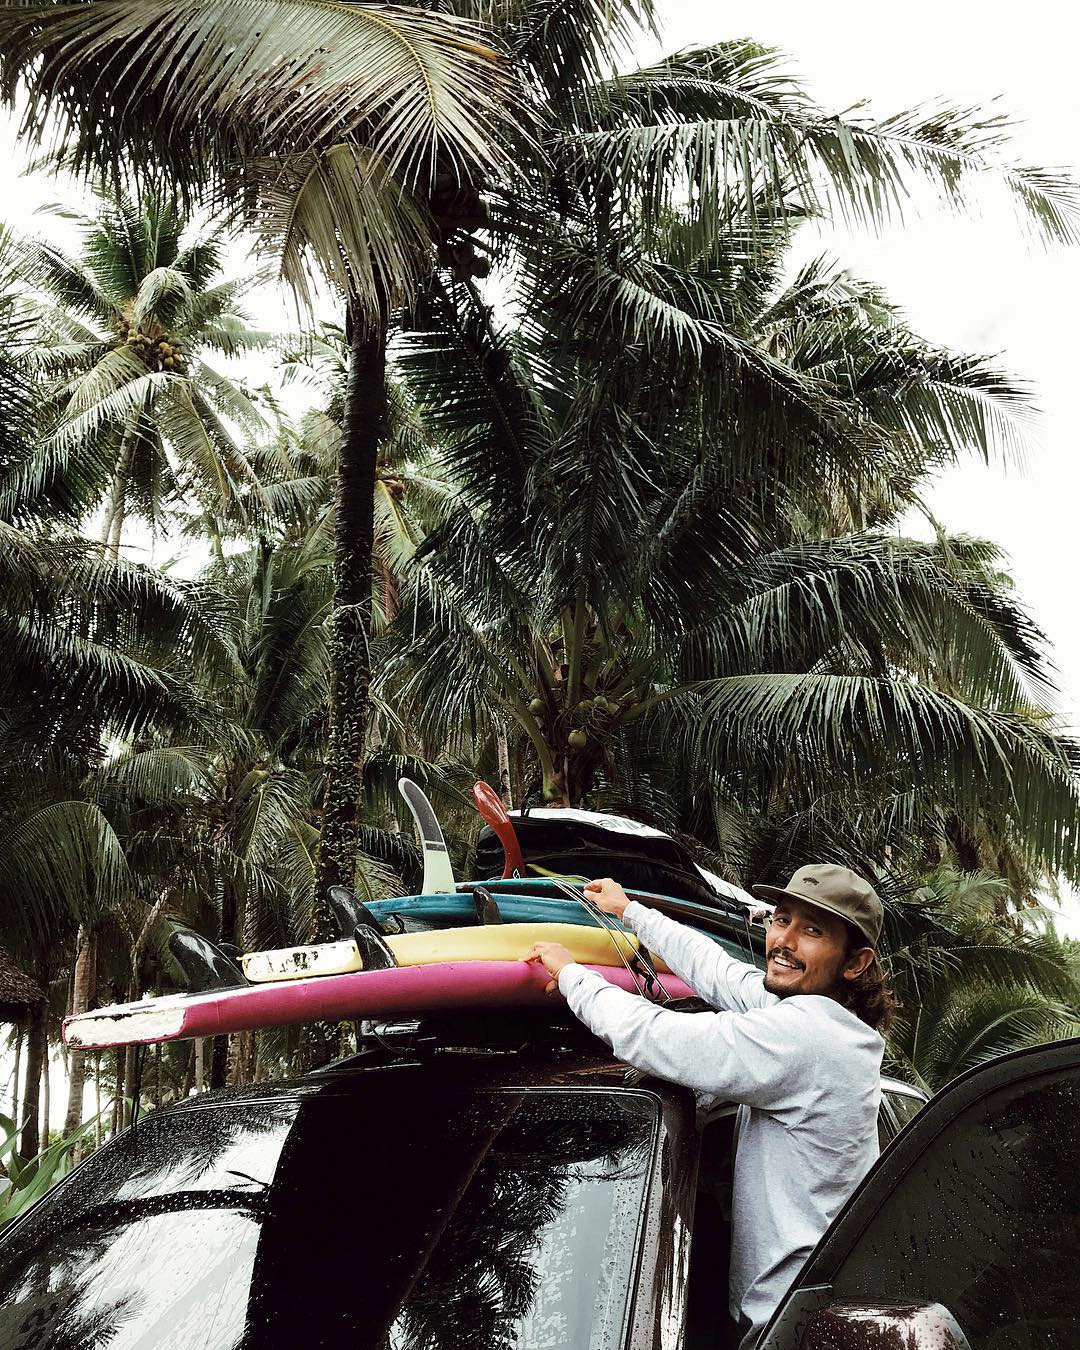 luke landrigan traveling with surf boards